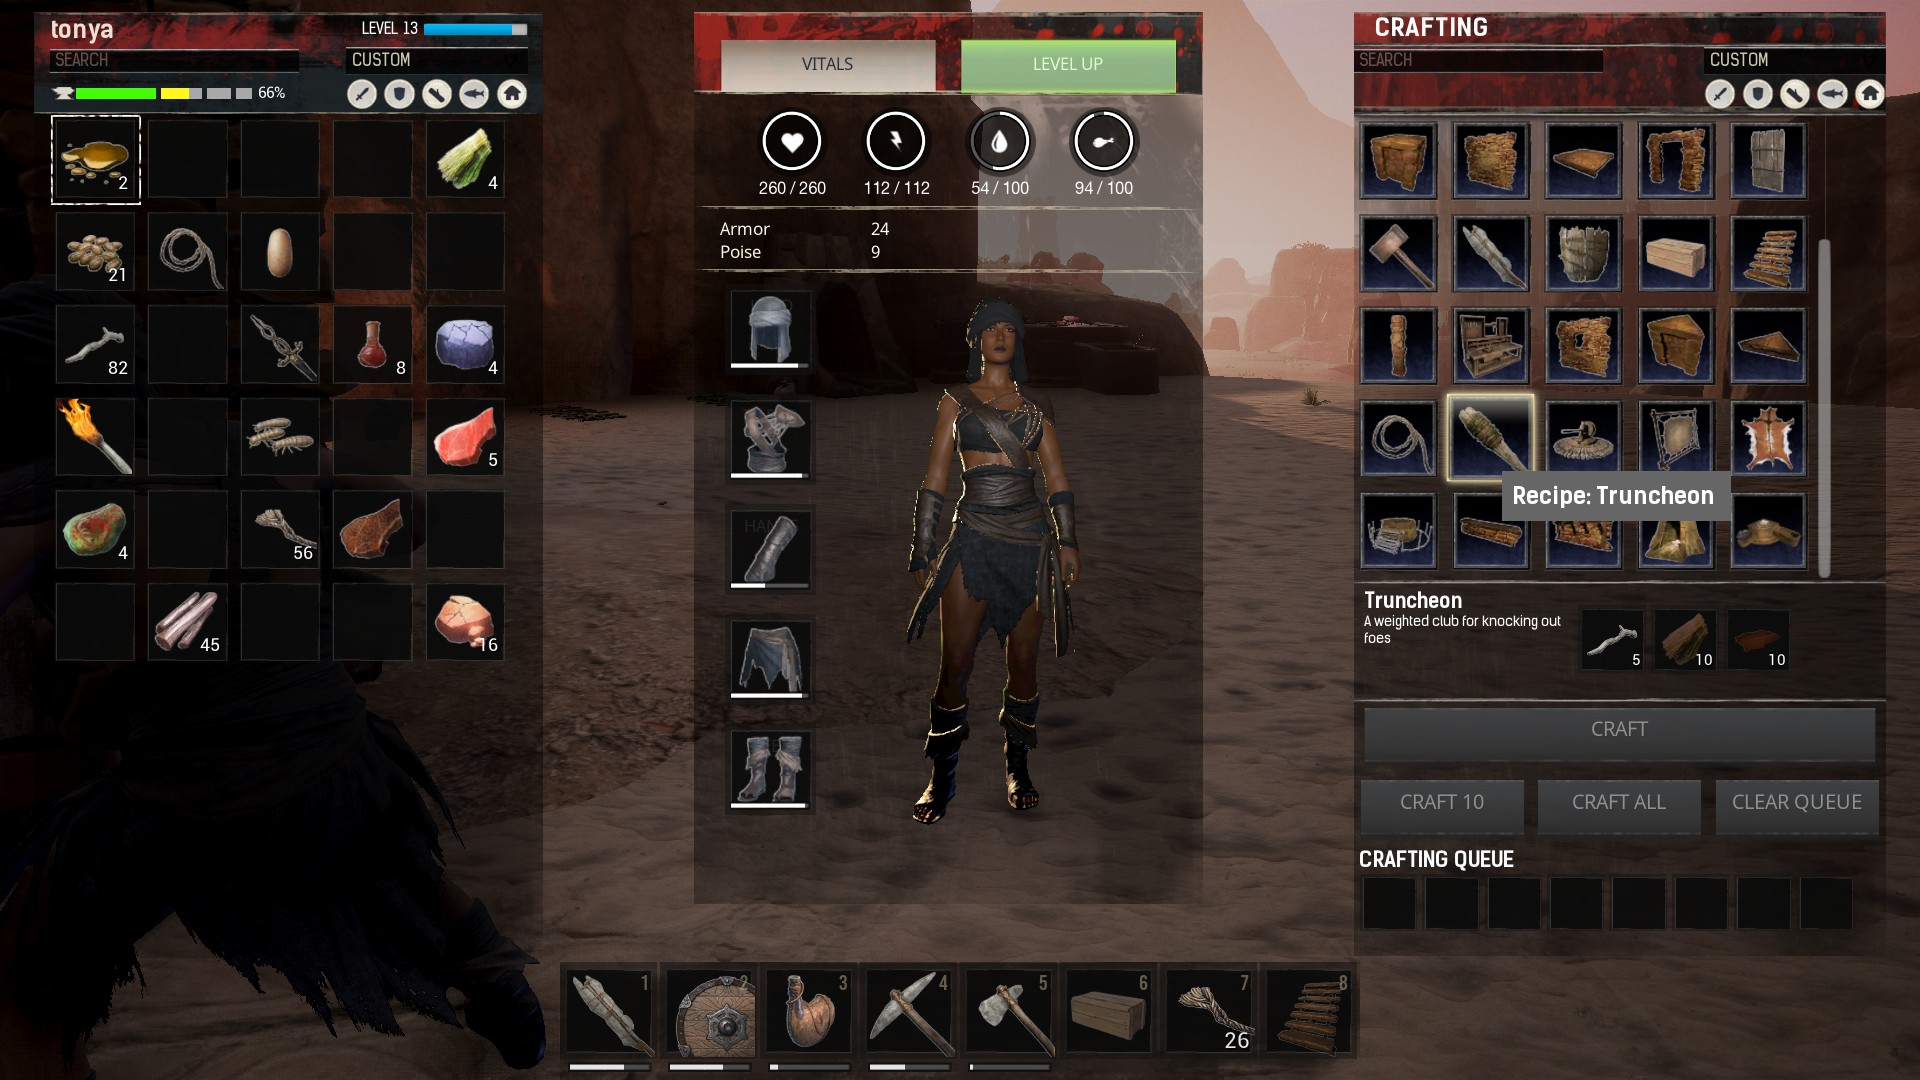 Exiles gameplay tips and tricks for new and advanced players conan exiles gameplay tips and tricks for new and advanced players forumfinder Images